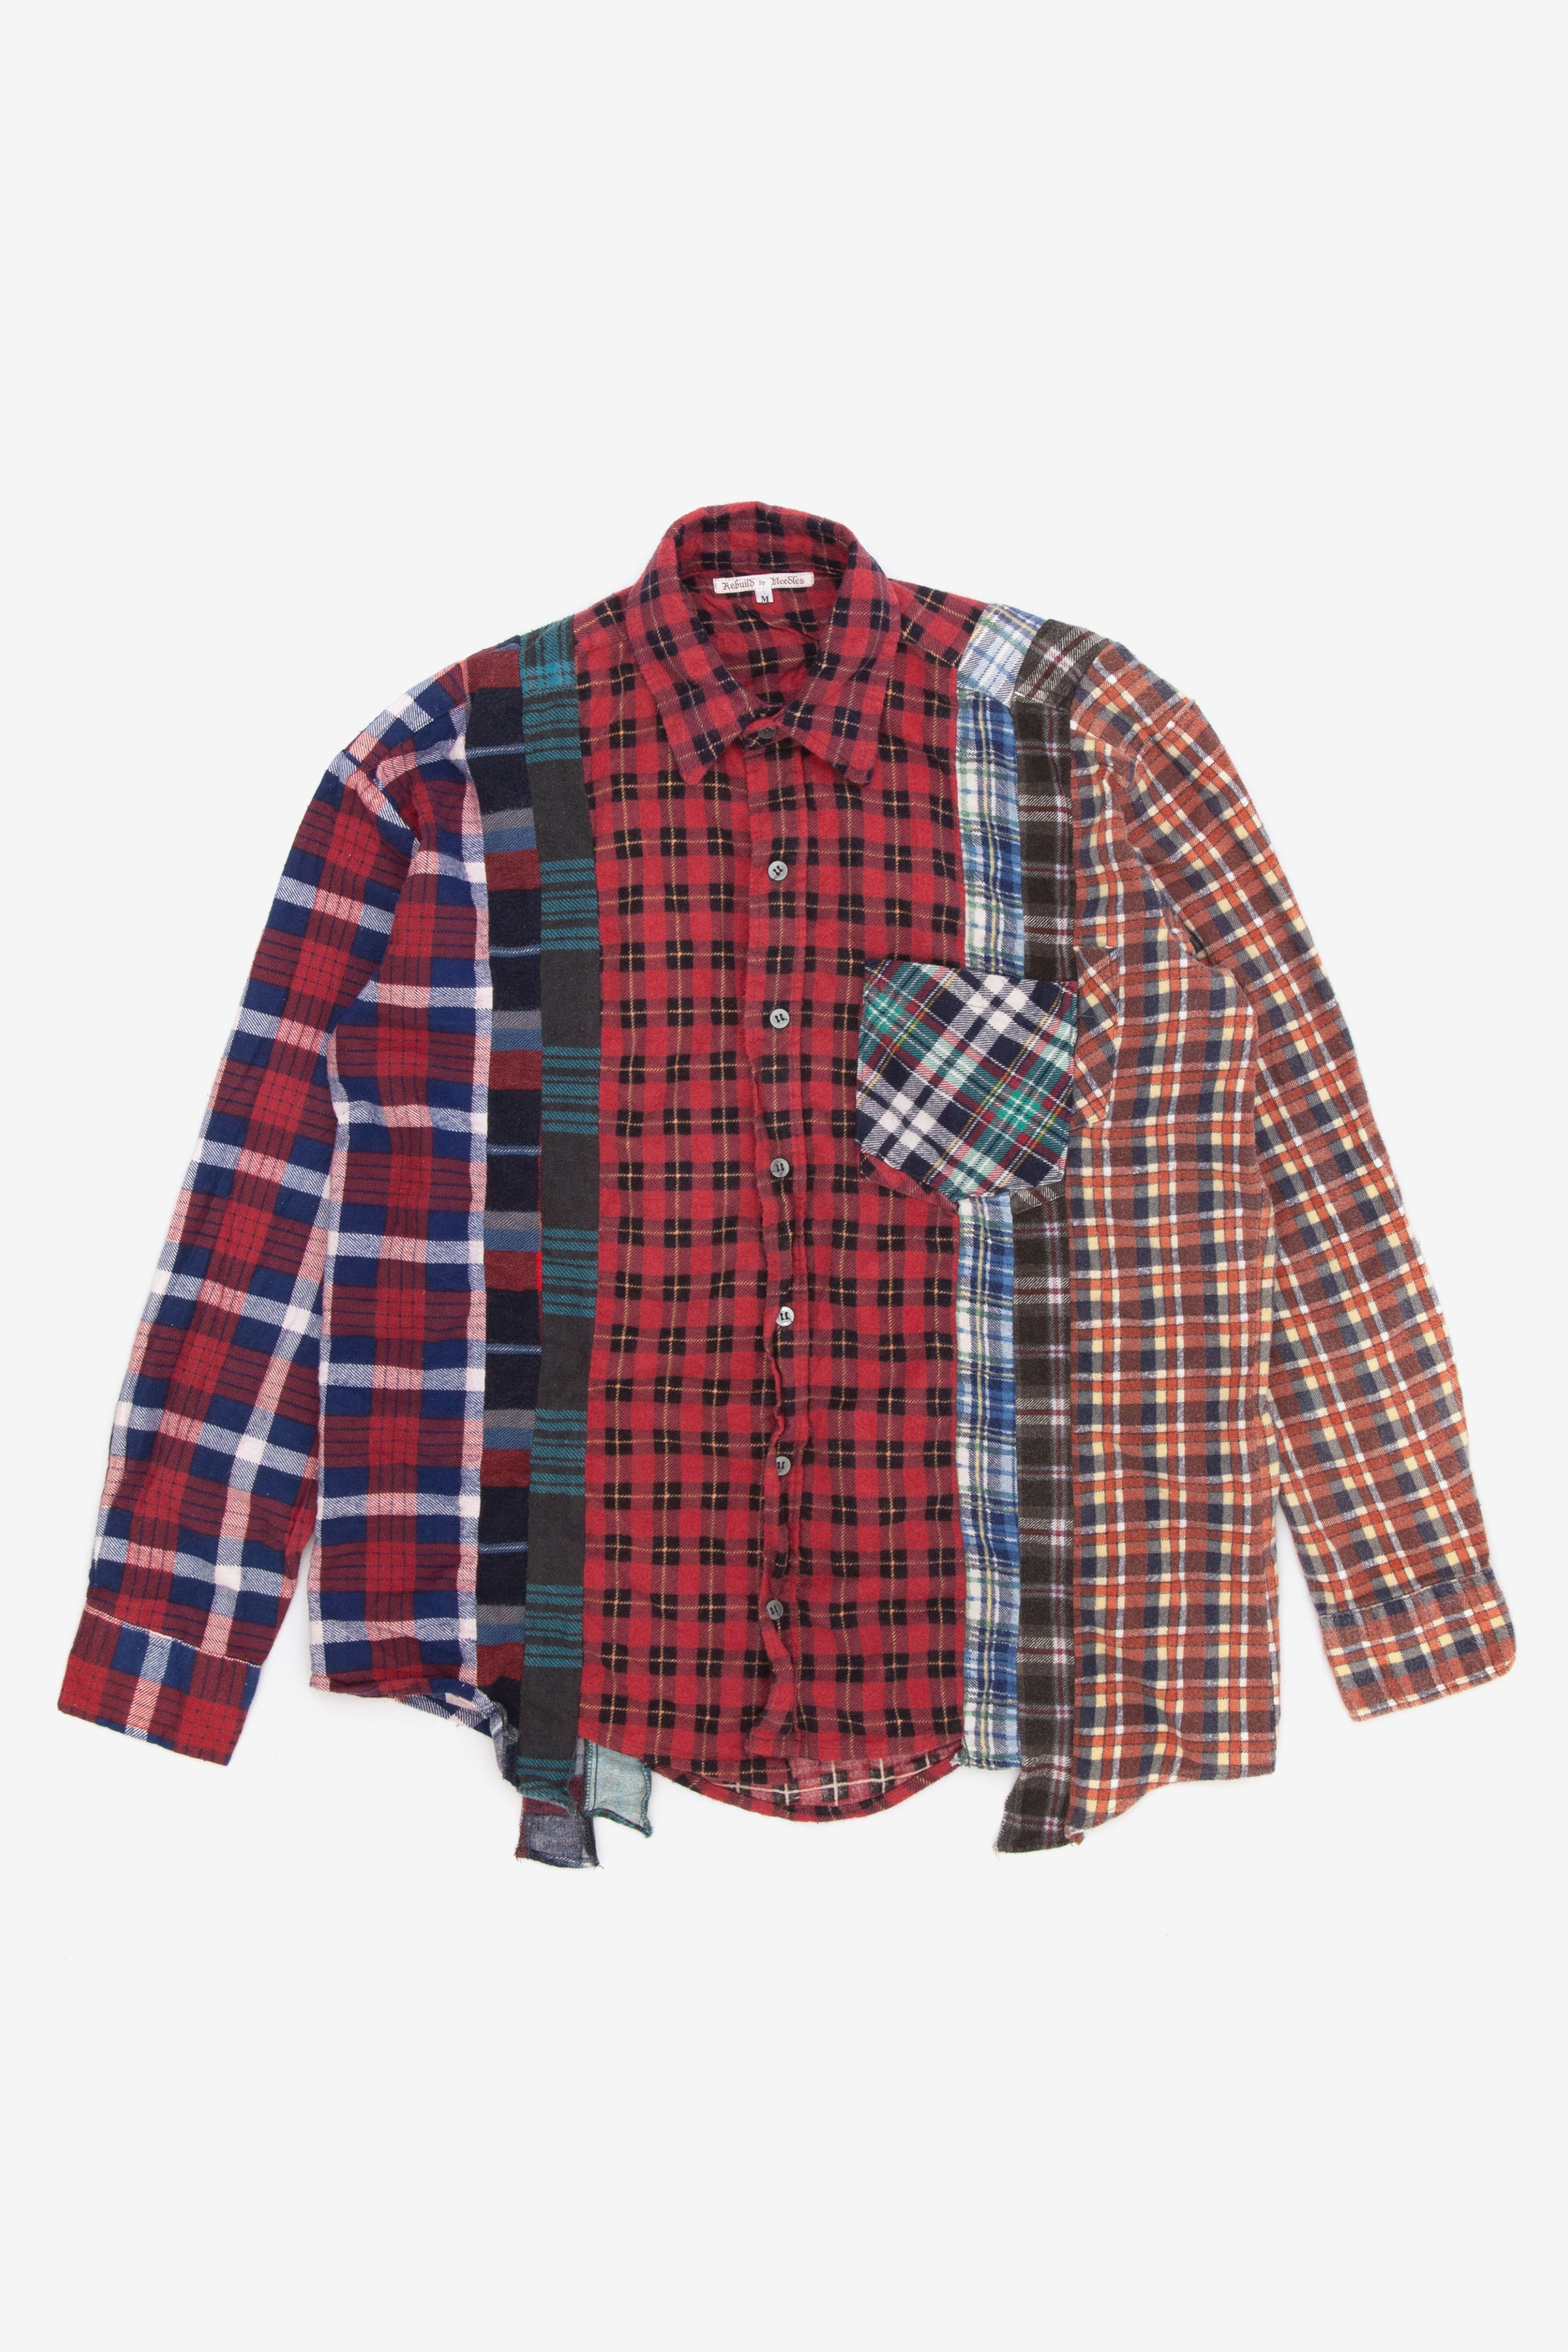 Needles rebuild 7 cuts flannel shirt - Medium 2